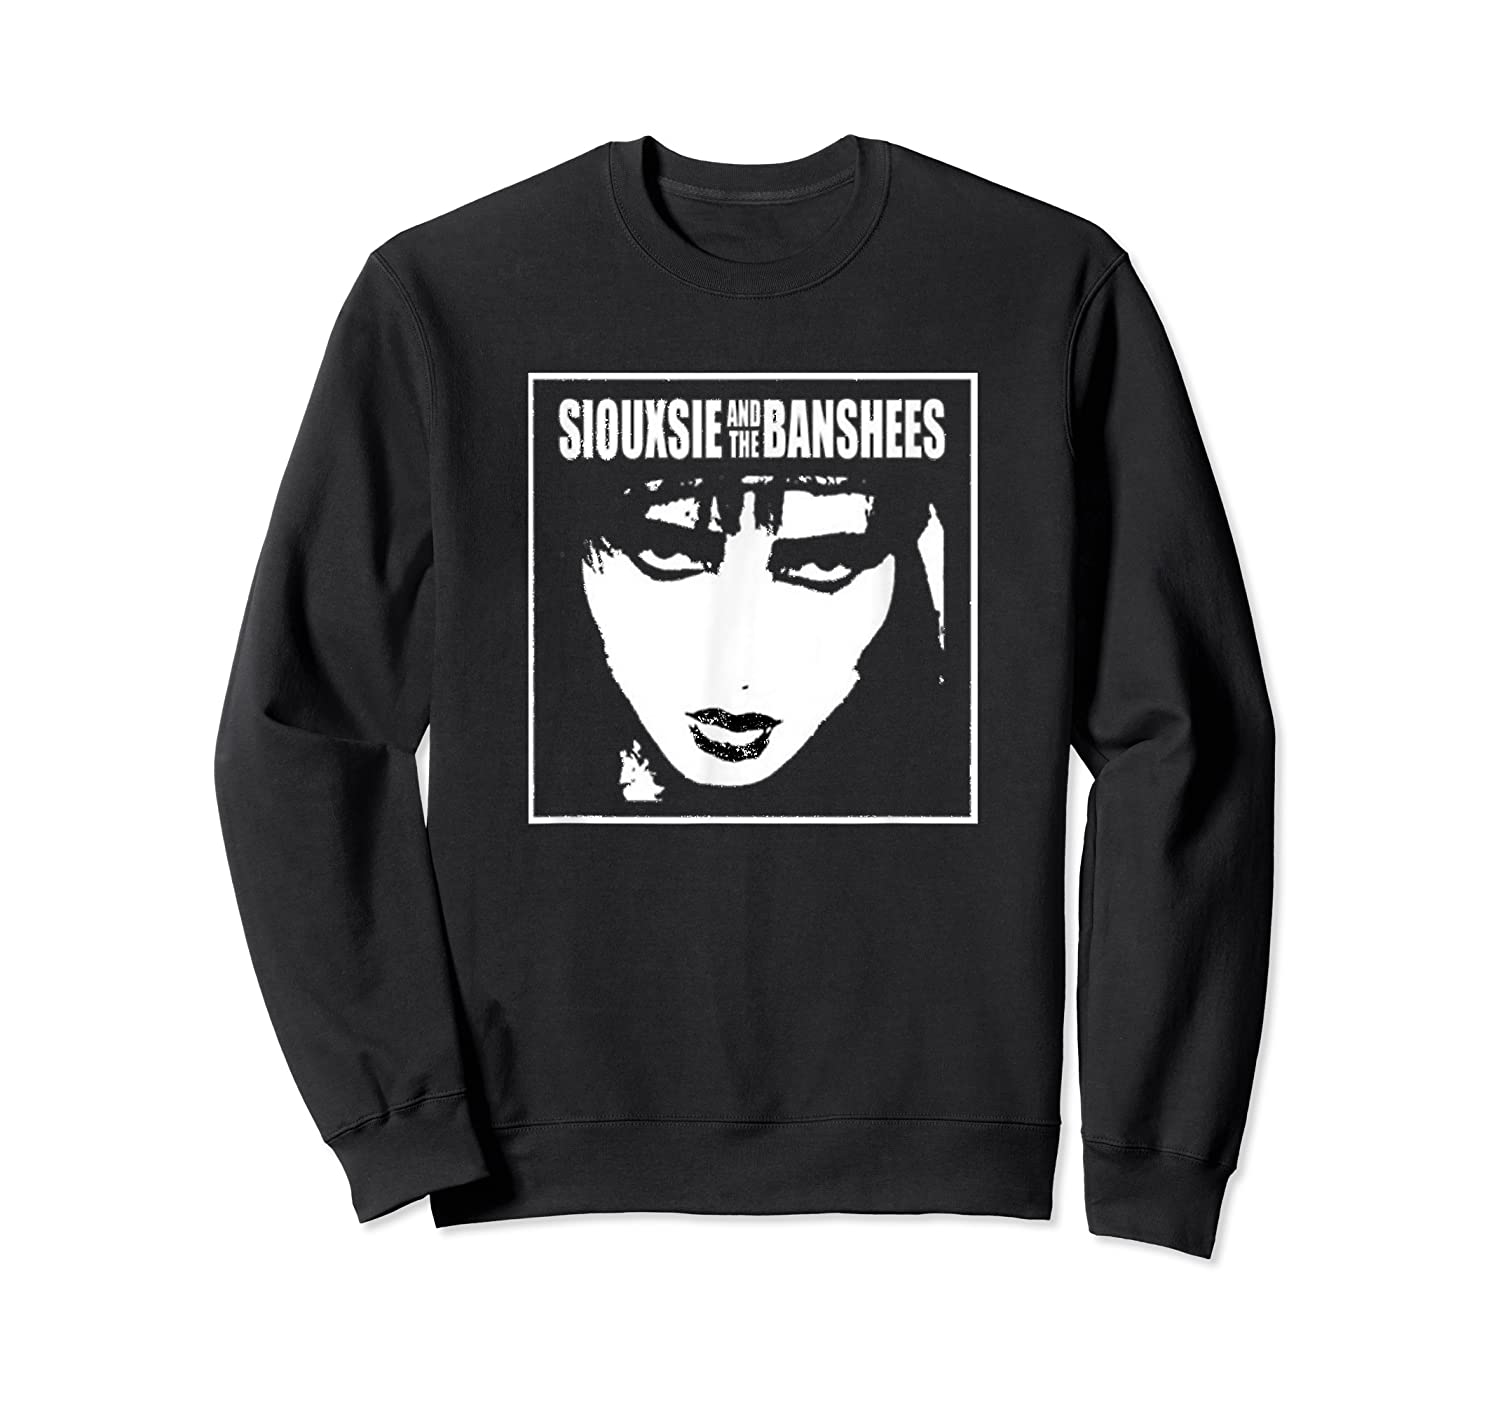 Siouxsie And The Banshees Siouxsie Sioux T Shirt Crewneck Sweater